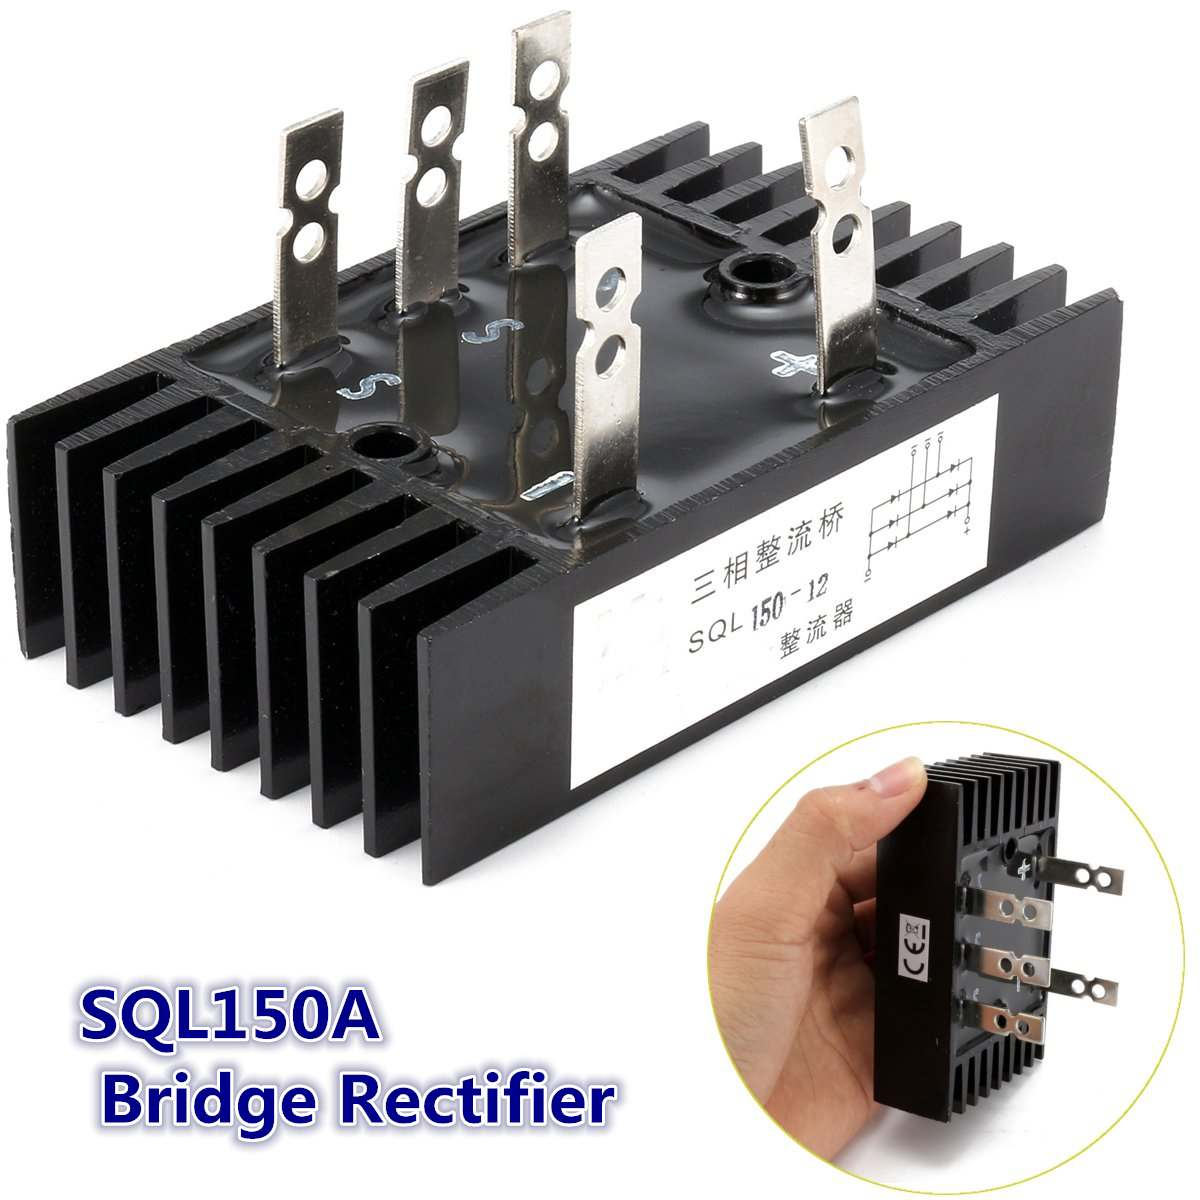 1PC 3 Phase Diode Bridge Rectifier 150A 1000V-1600V SQL150A 200degree Aluminum Module Electronic Components & Supplies